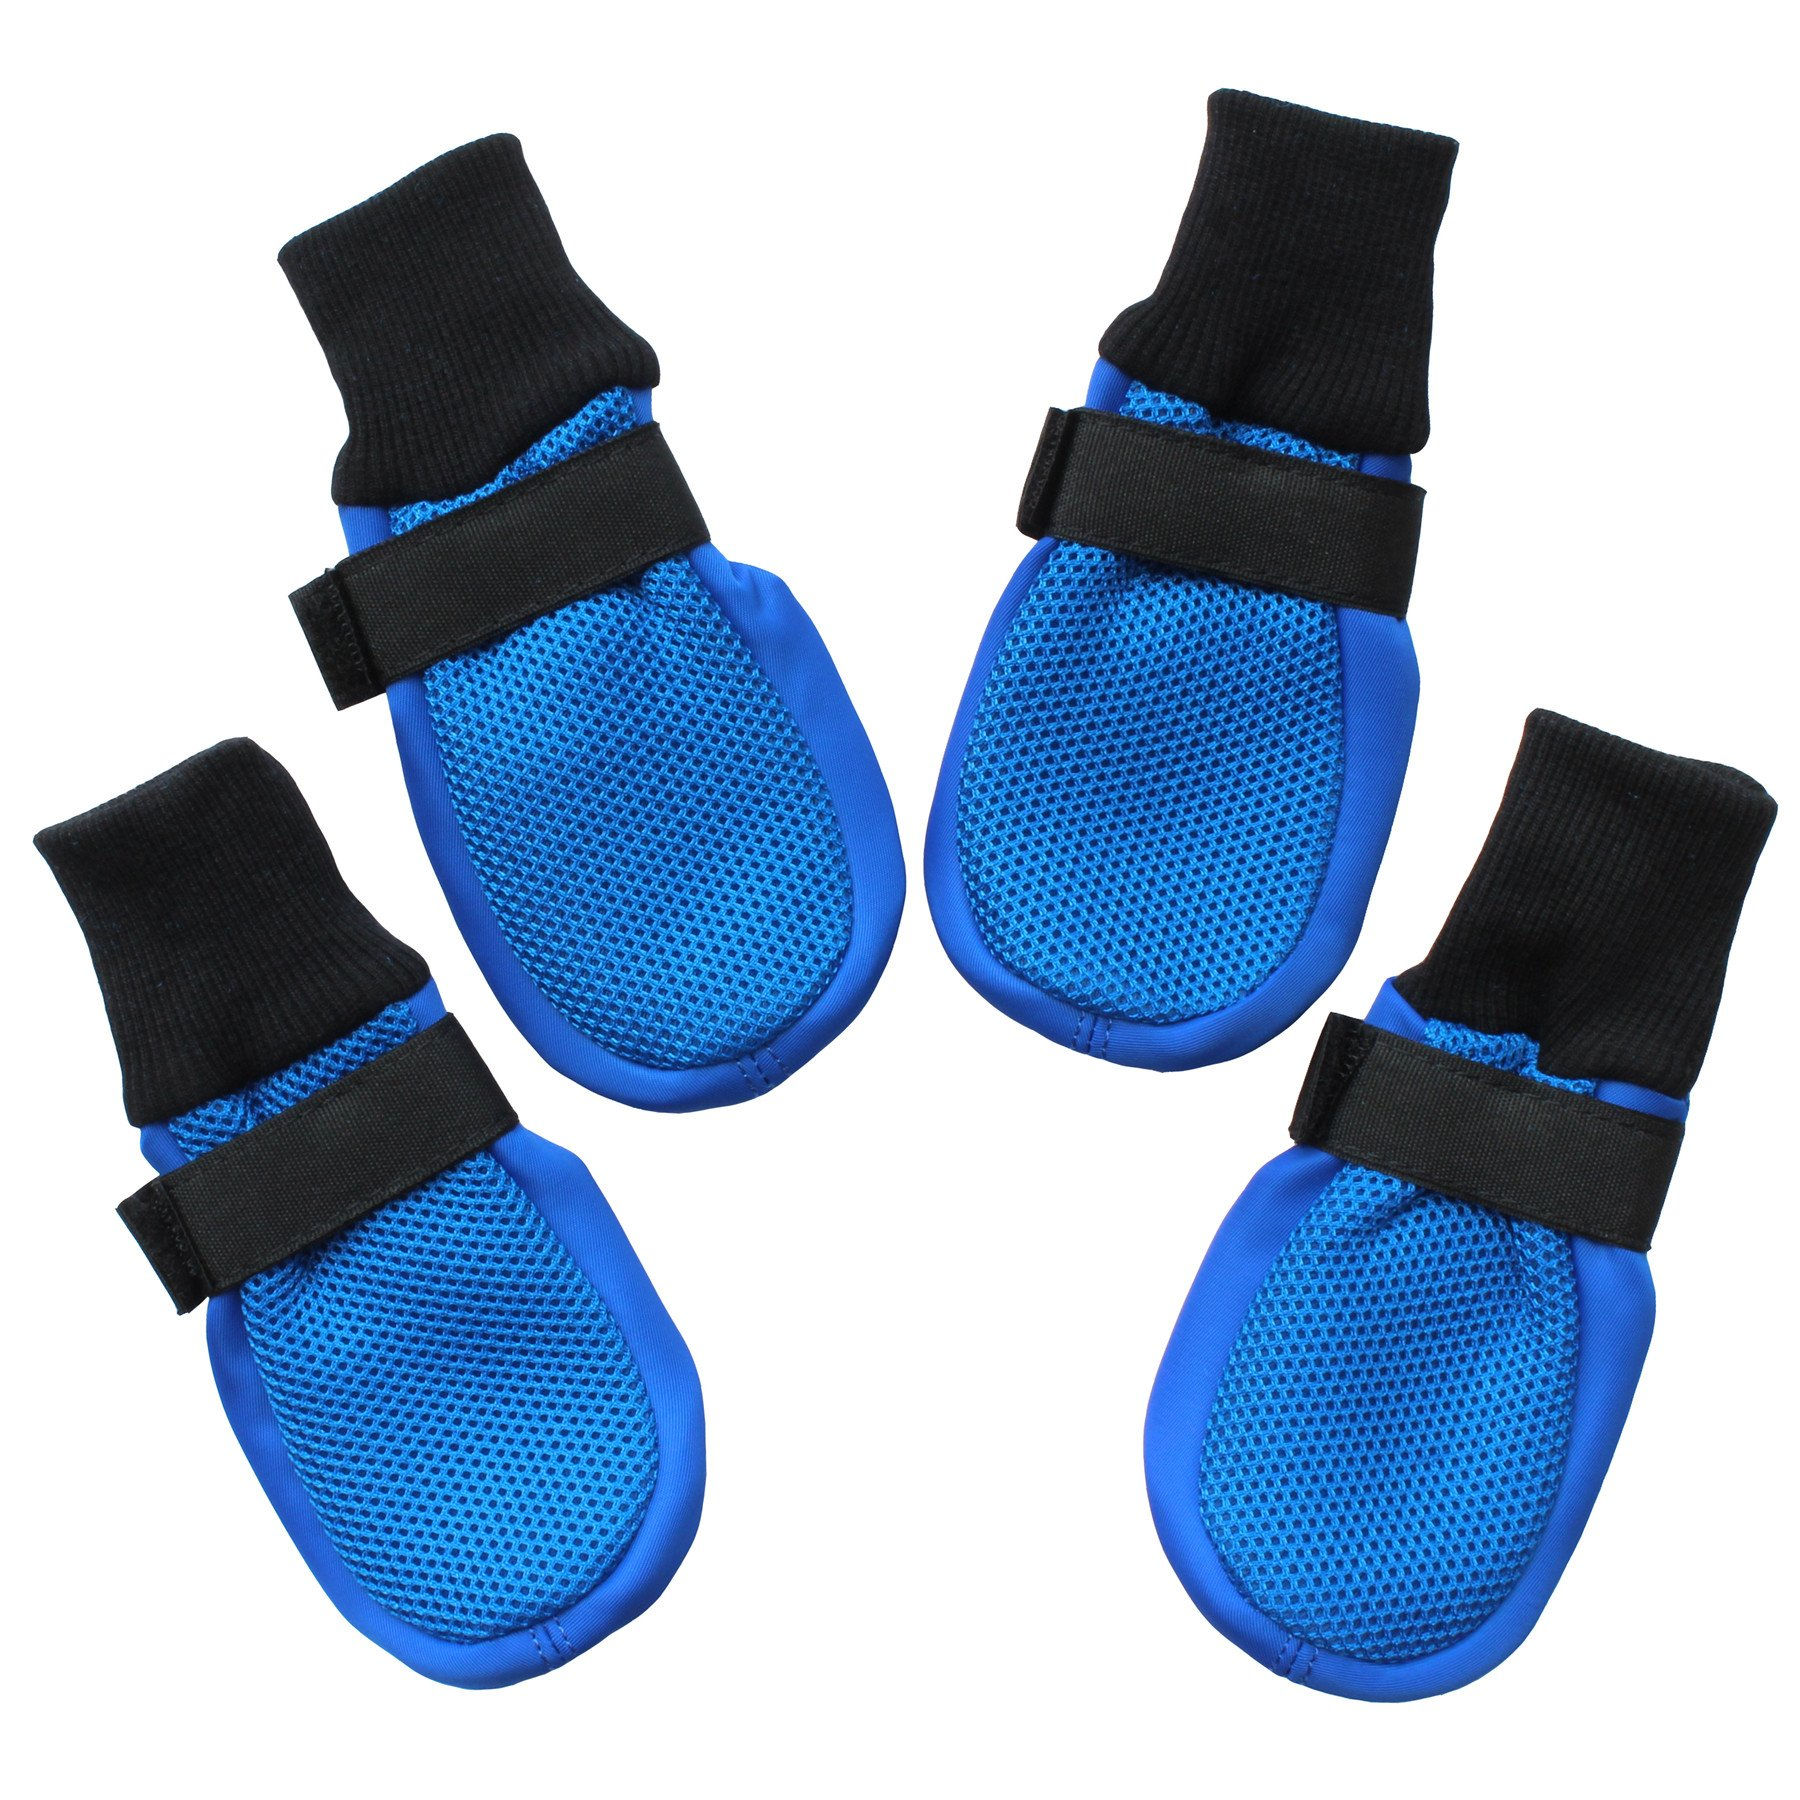 Hiado Dog Shoes Boots Breathable Mesh Anti Slip Traction Soft Rubber Soles Hardwood Floors to Prevent Scratching Sliding Small Dogs Blue S